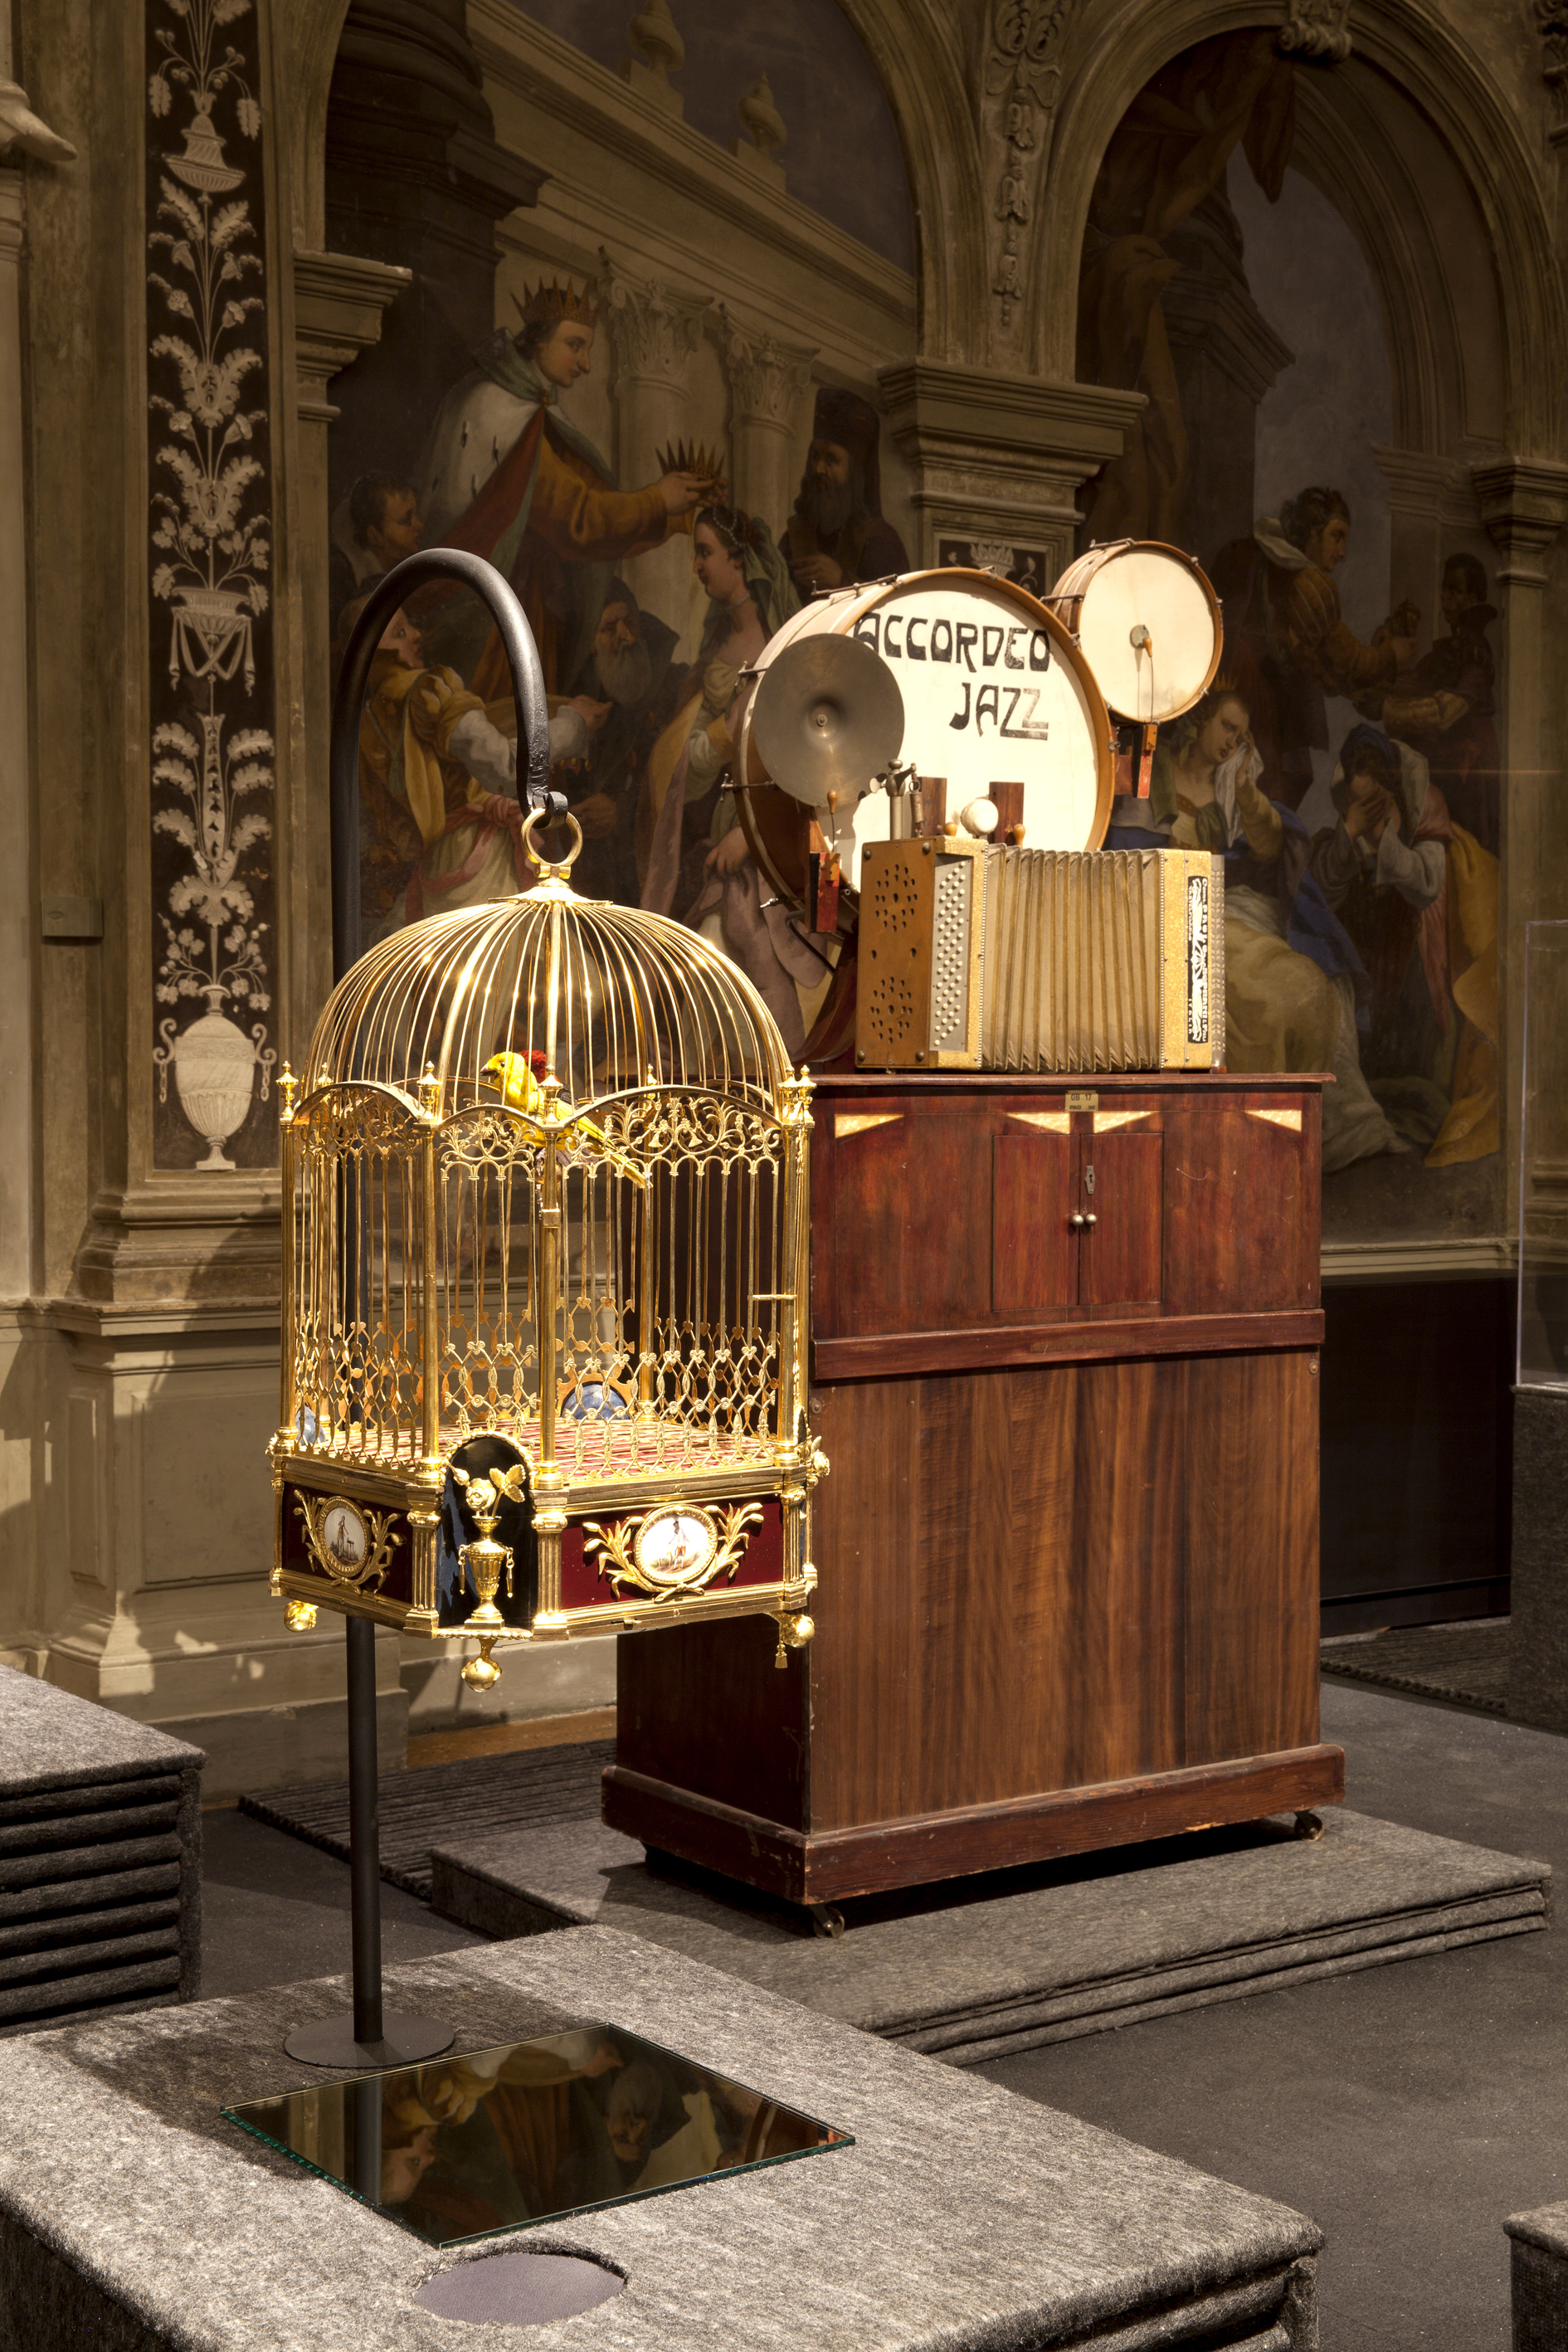 Amelotti, <i>Orchestrion Accordeo Jazz</i> (circa 1920) e Pierre Jaquet-Droz. <i>Singing Bird Cage With Clock</i> (circa 1785) (Photo Attilio Maranzano)